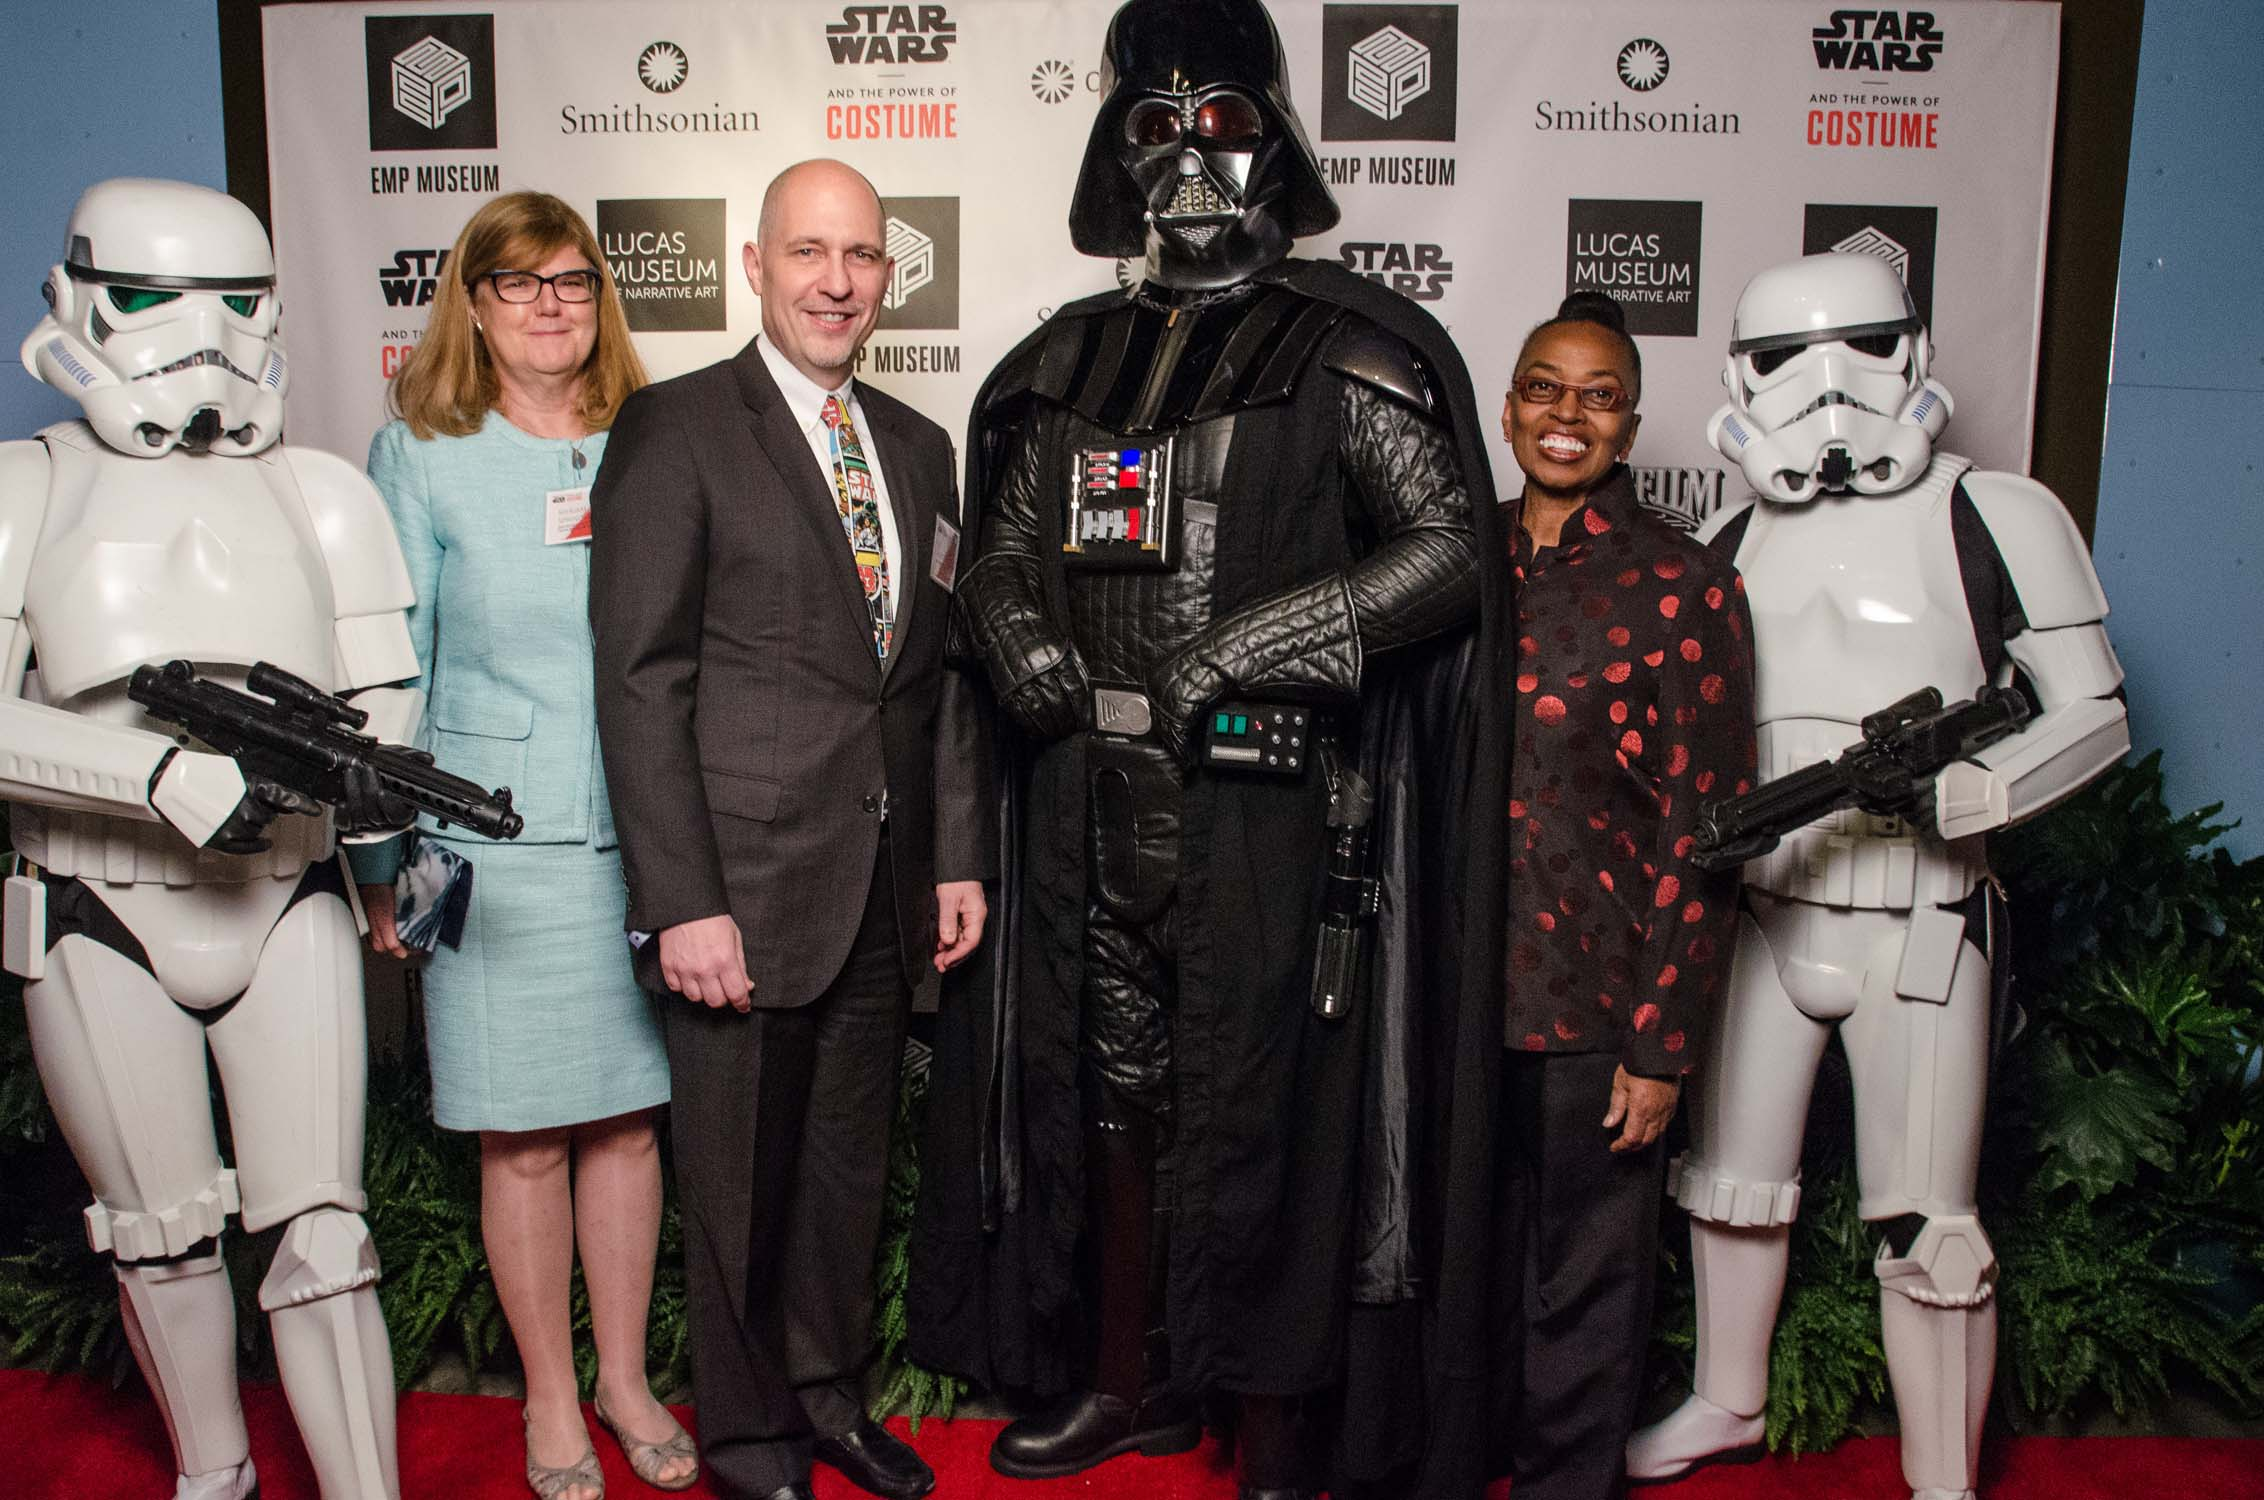 From left, unidentified Imperial stormtrooper; Myriam Springuel, interim director of the Smithsonian Traveling Exhibition Service; Acting Secretary Al Horvath; Supreme Commander of the Imperial Forces Darth Vader; Claudine Brown, Assistant Secretary for Education and Access; and an unidentified Imperial stormtrooper. (Photo by Brady Harvey, courtesy of EMP Museum)